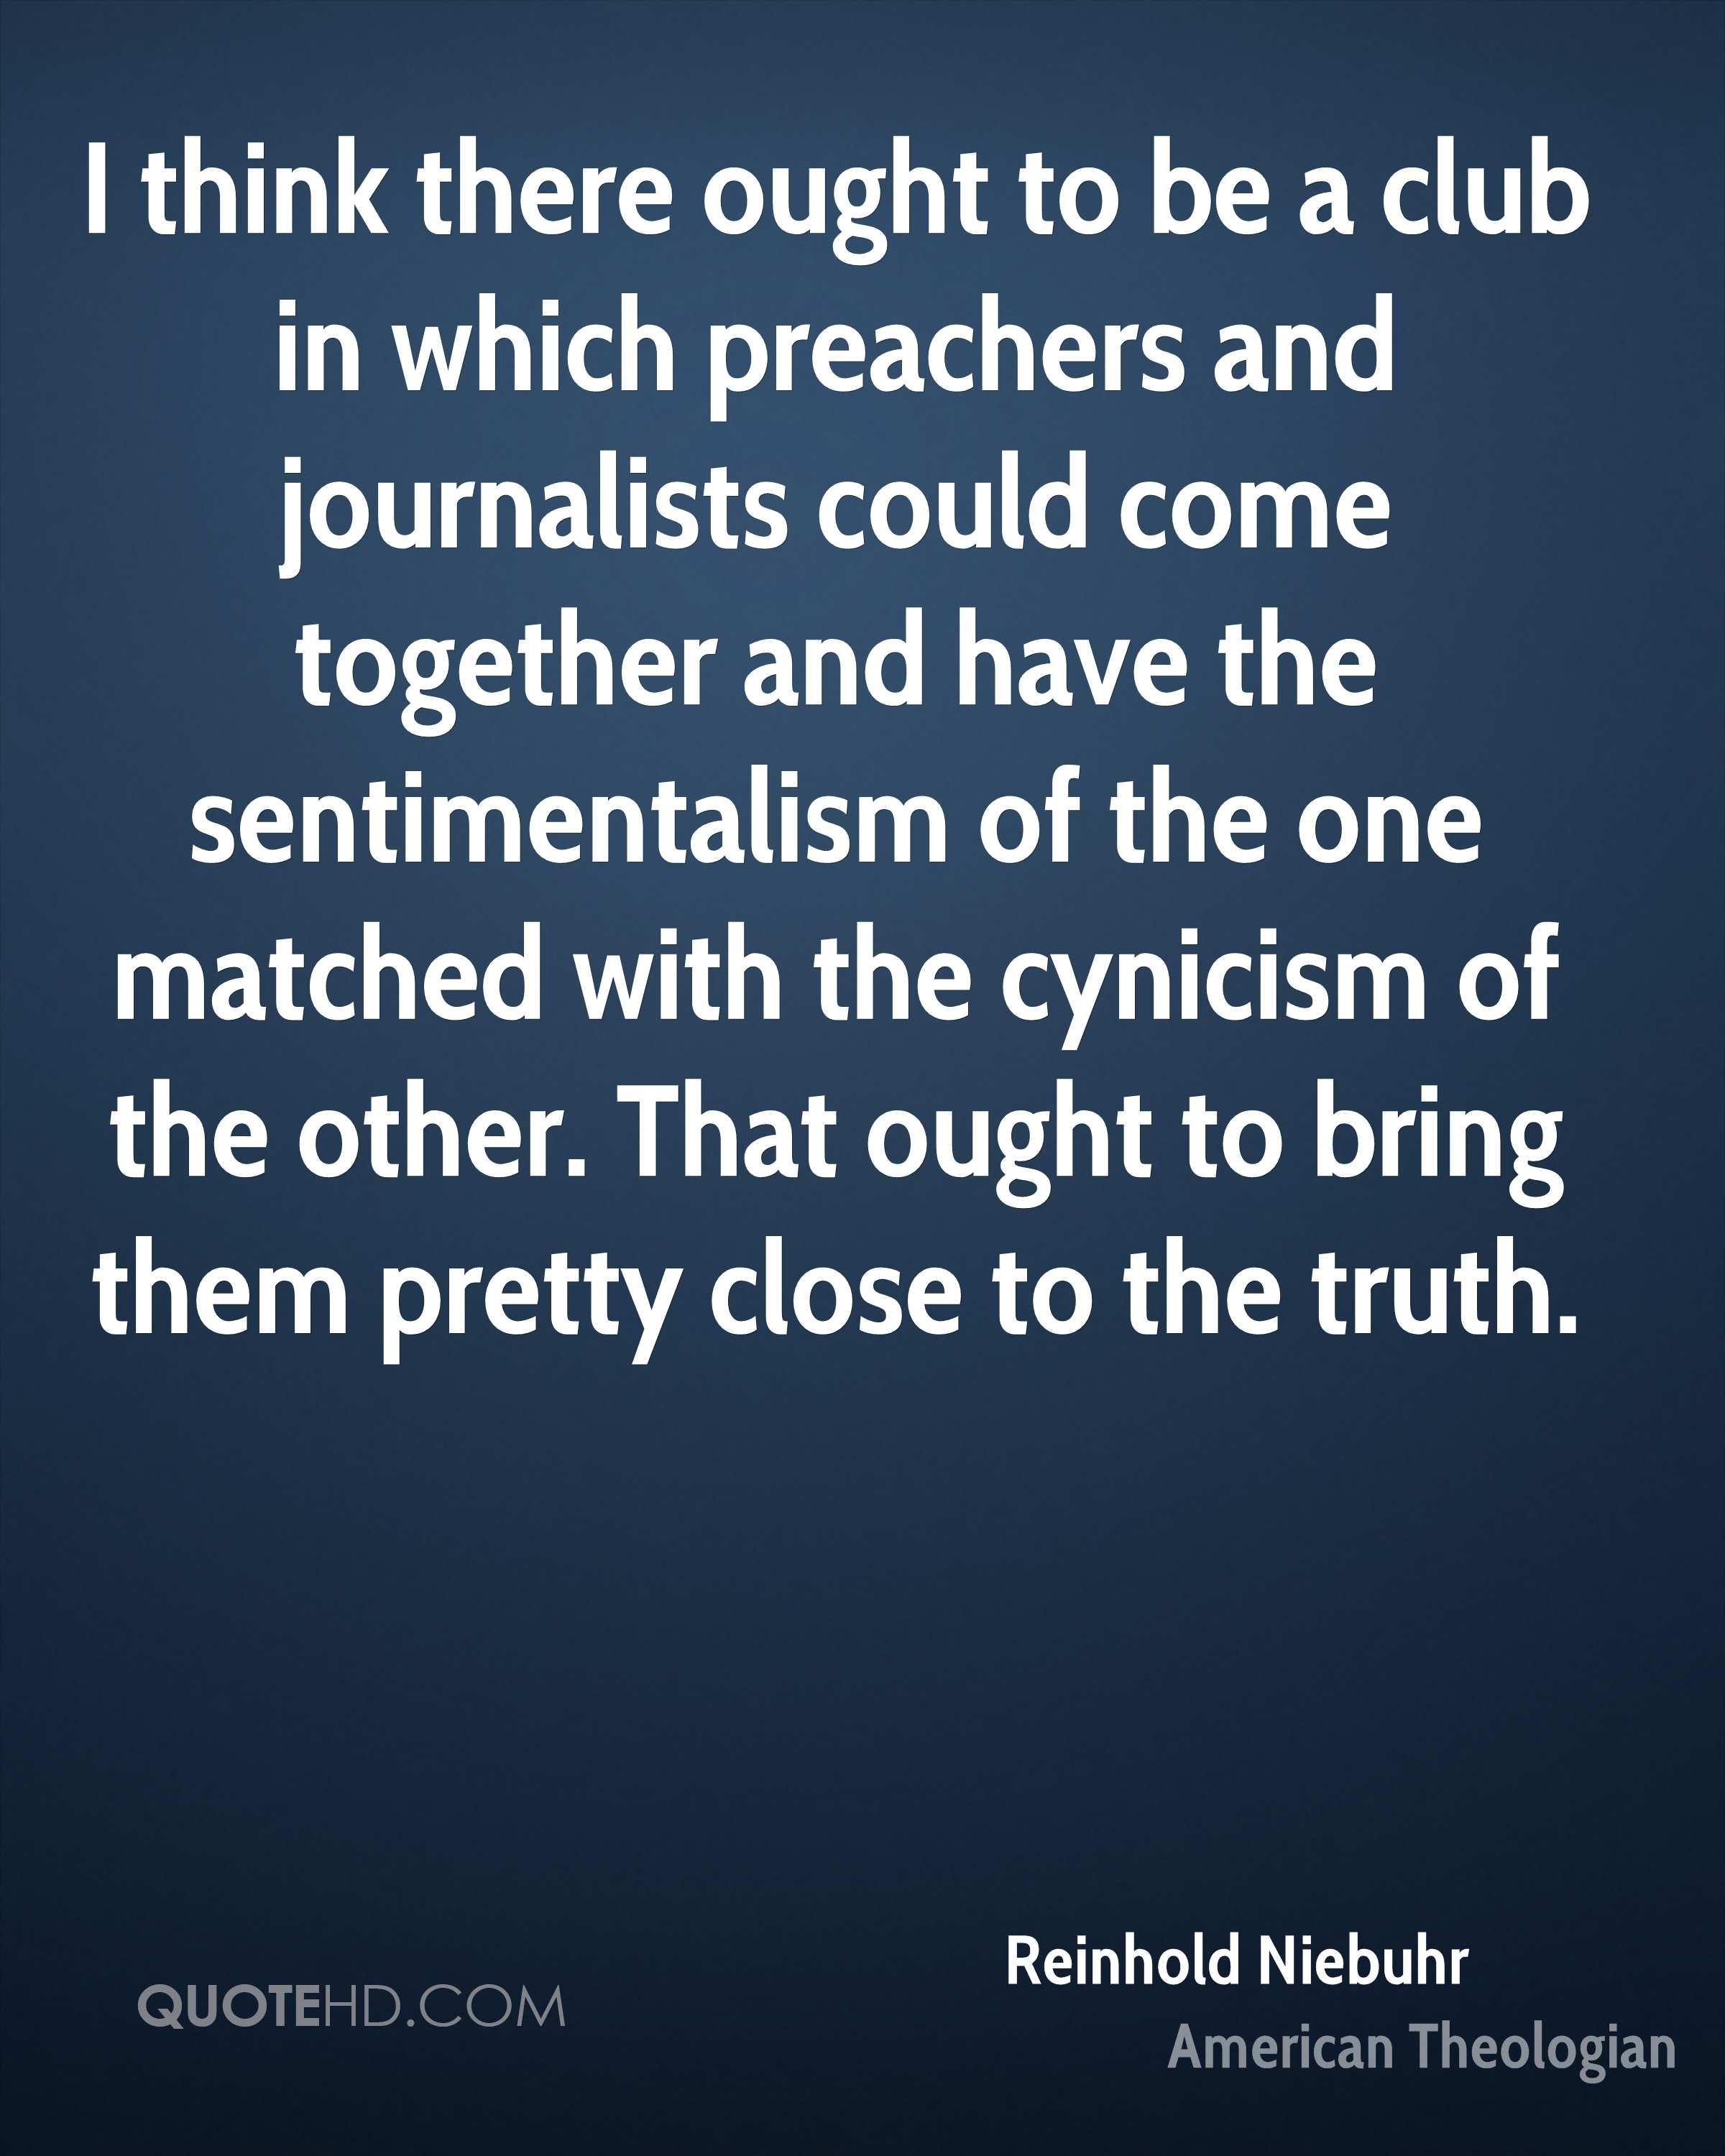 I think there ought to be a club in which preachers and journalists could come together and have the sentimentalism of the one matched with the cynicism of the other. That ought to bring them pretty close to the truth.